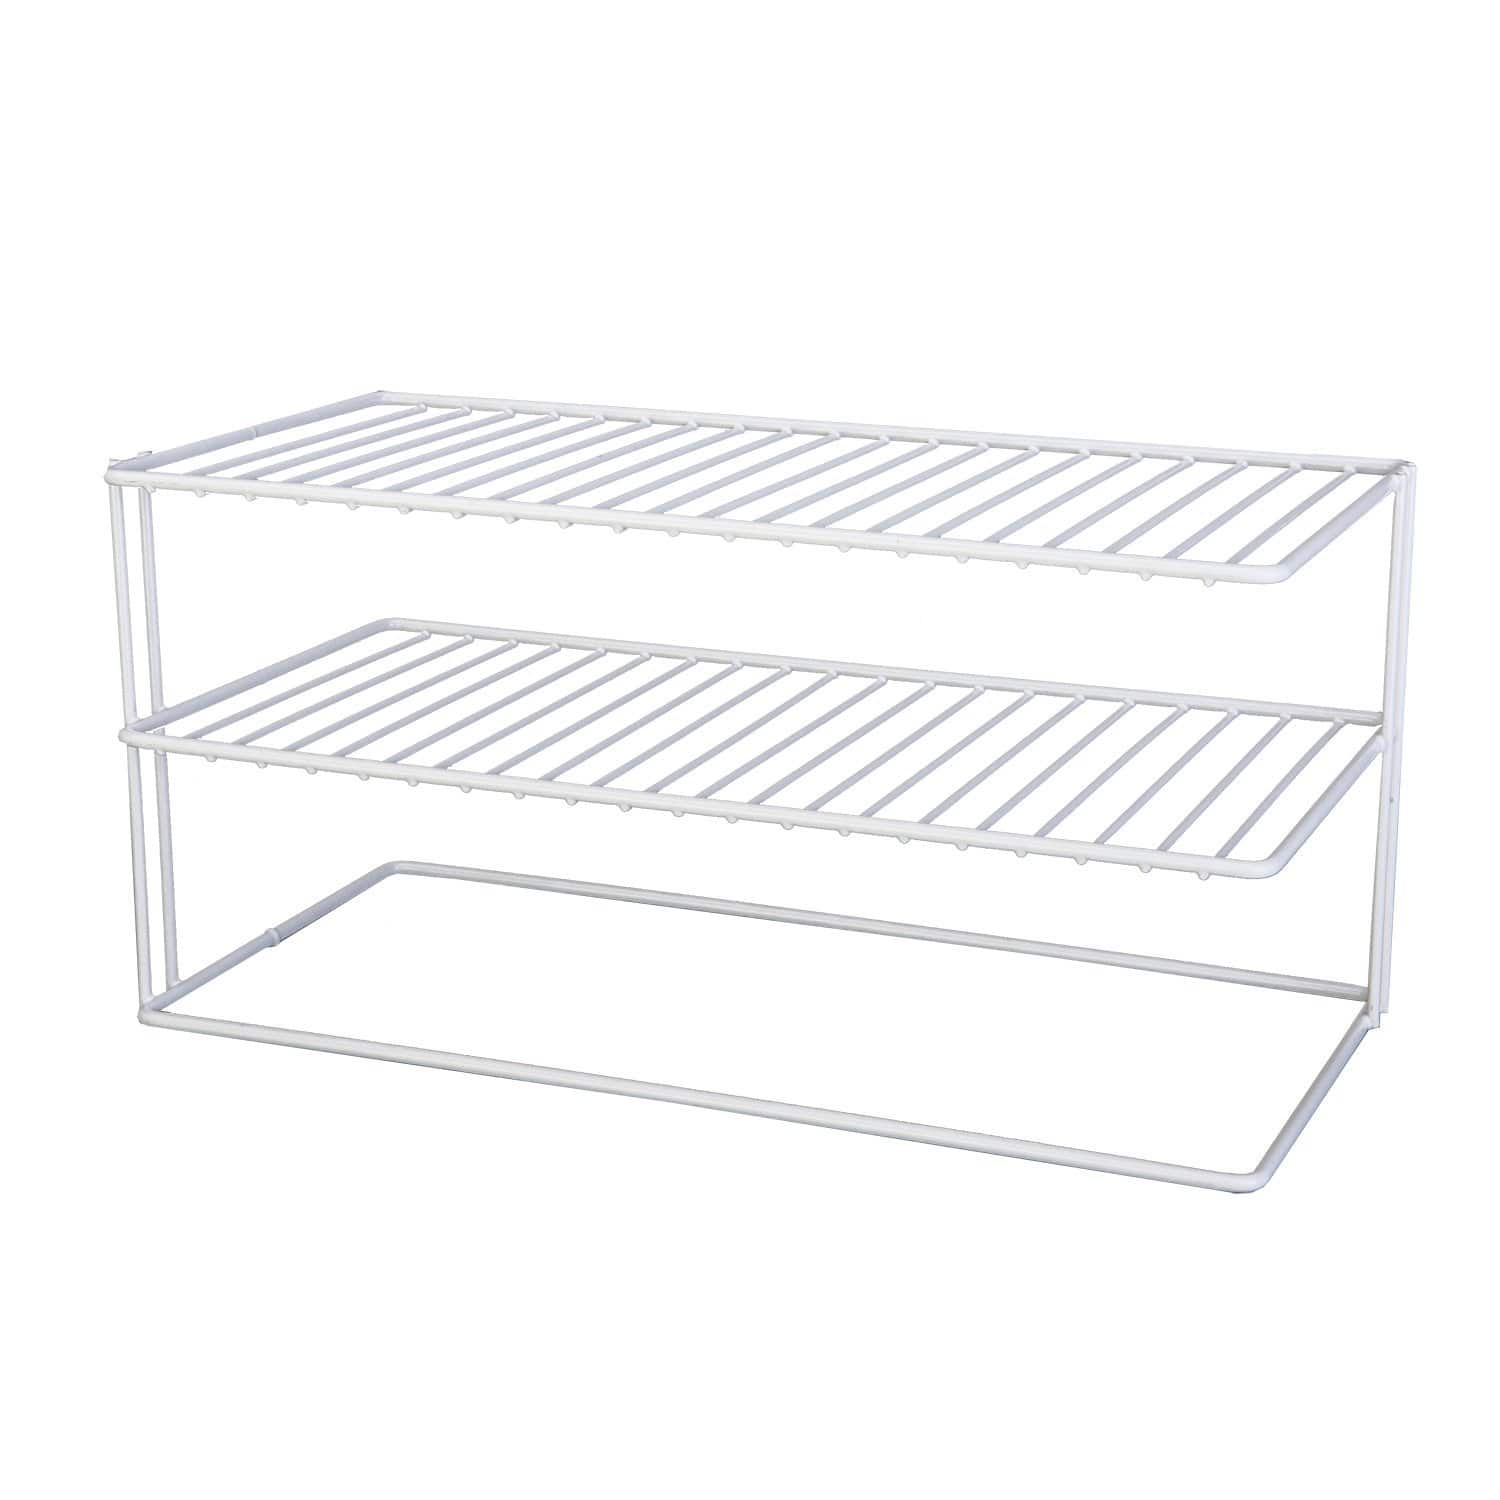 Add-on: Grayline Panacea 40126, Large Two Shelf Organizer, White $6.15